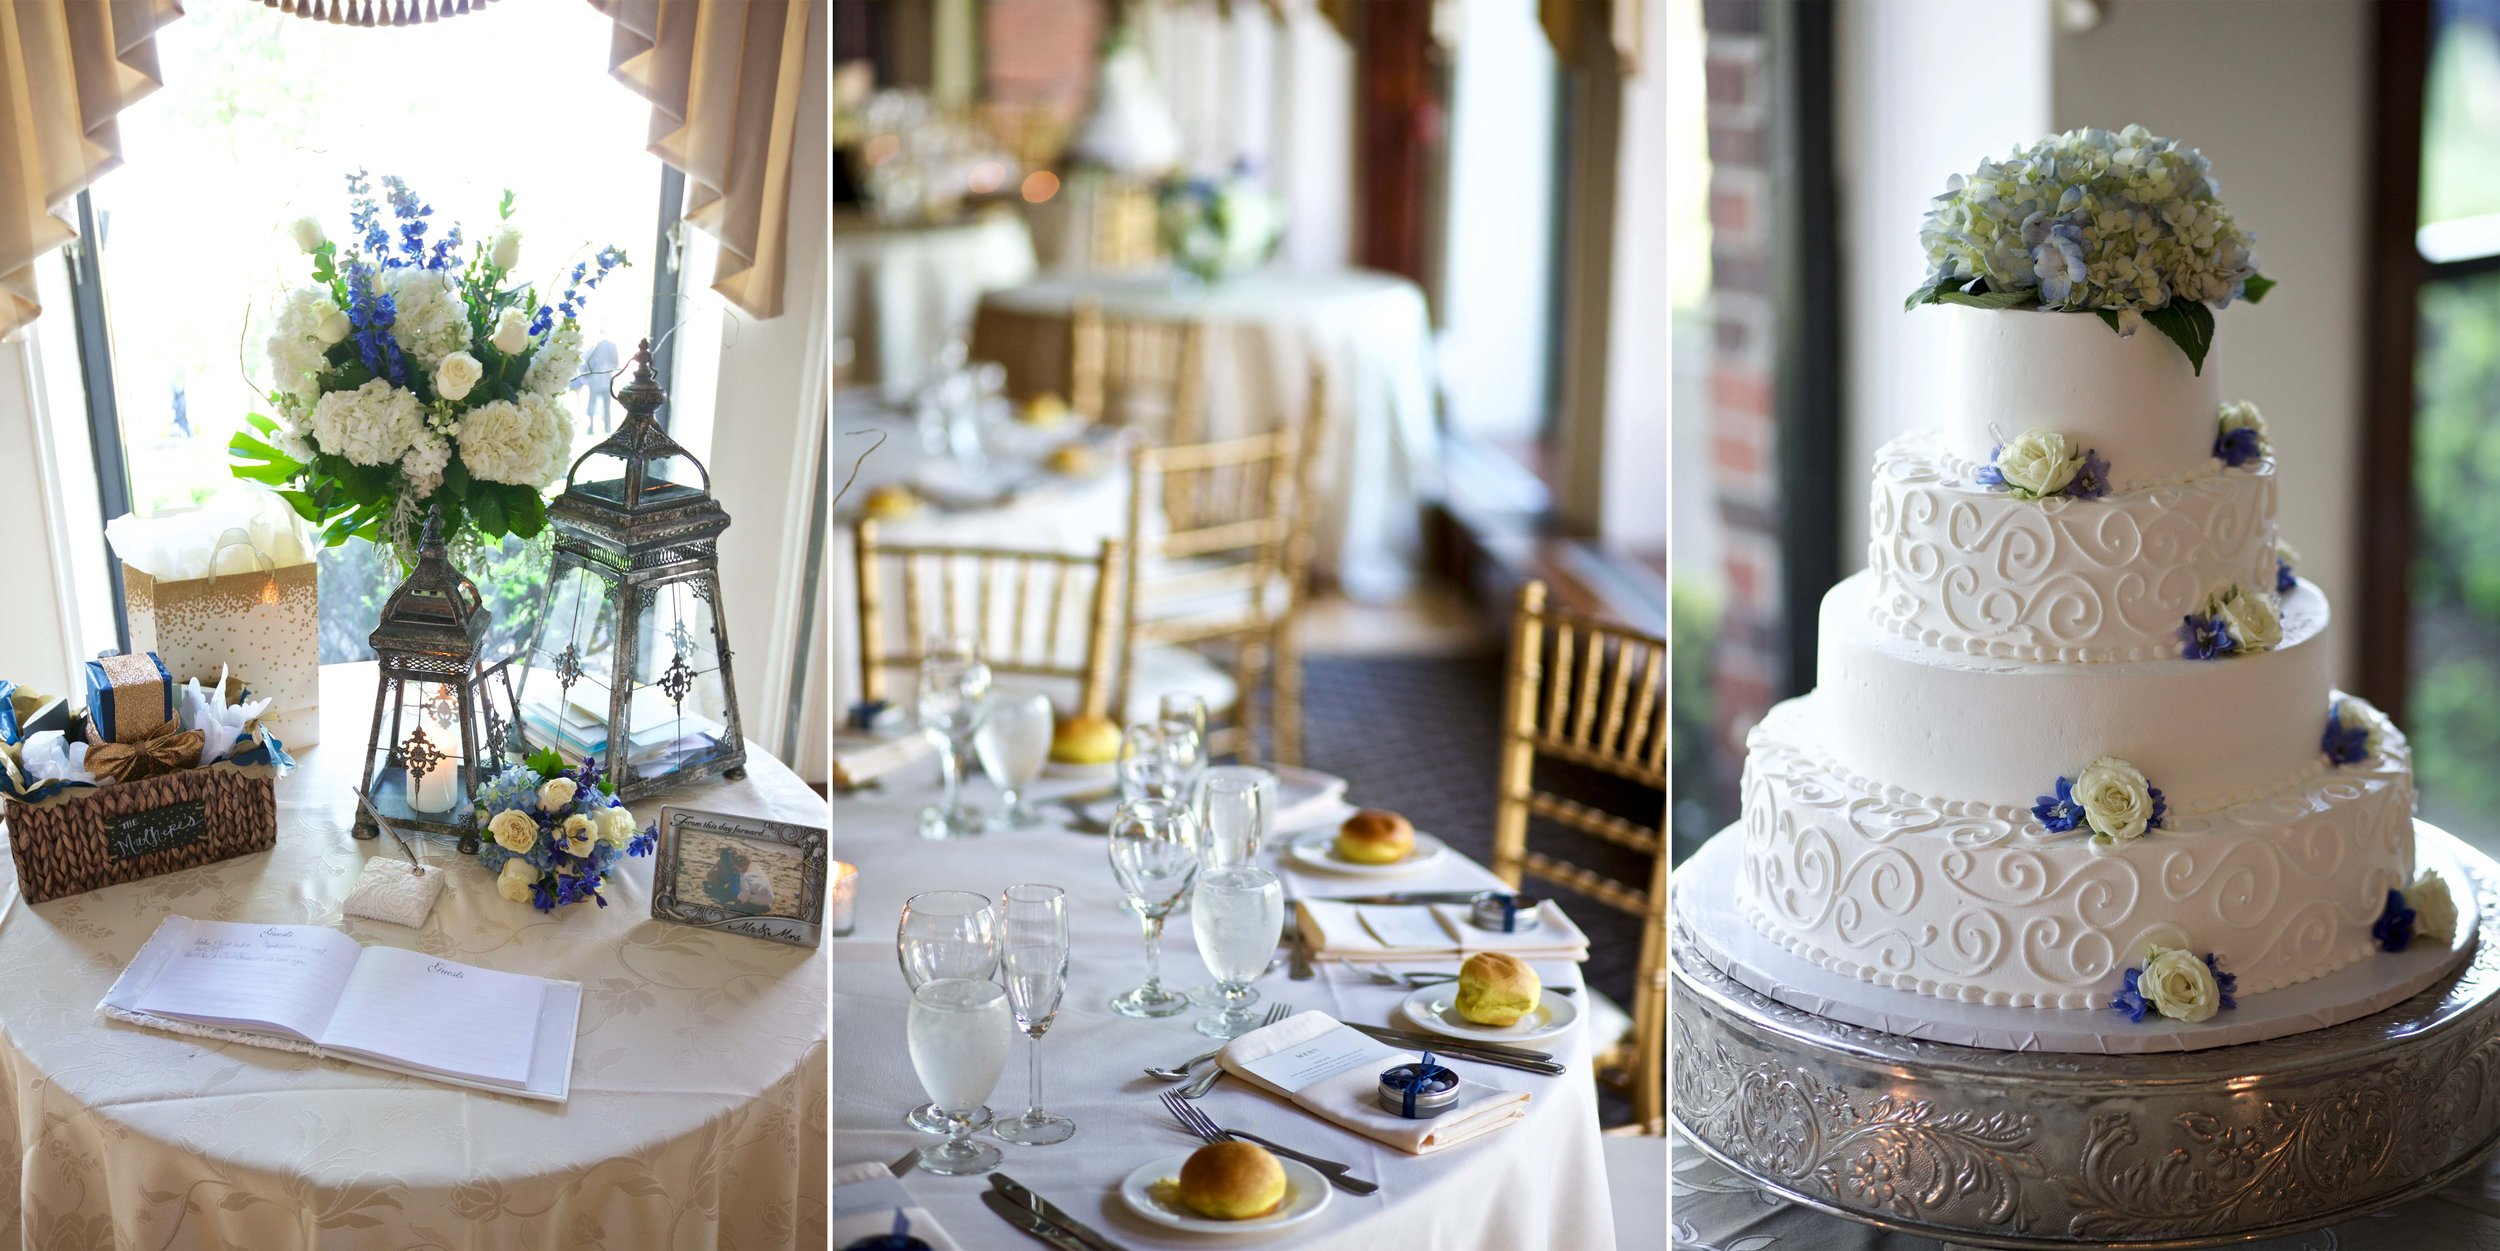 Wedding at the Thayer Hotel at West Point 4.jpg